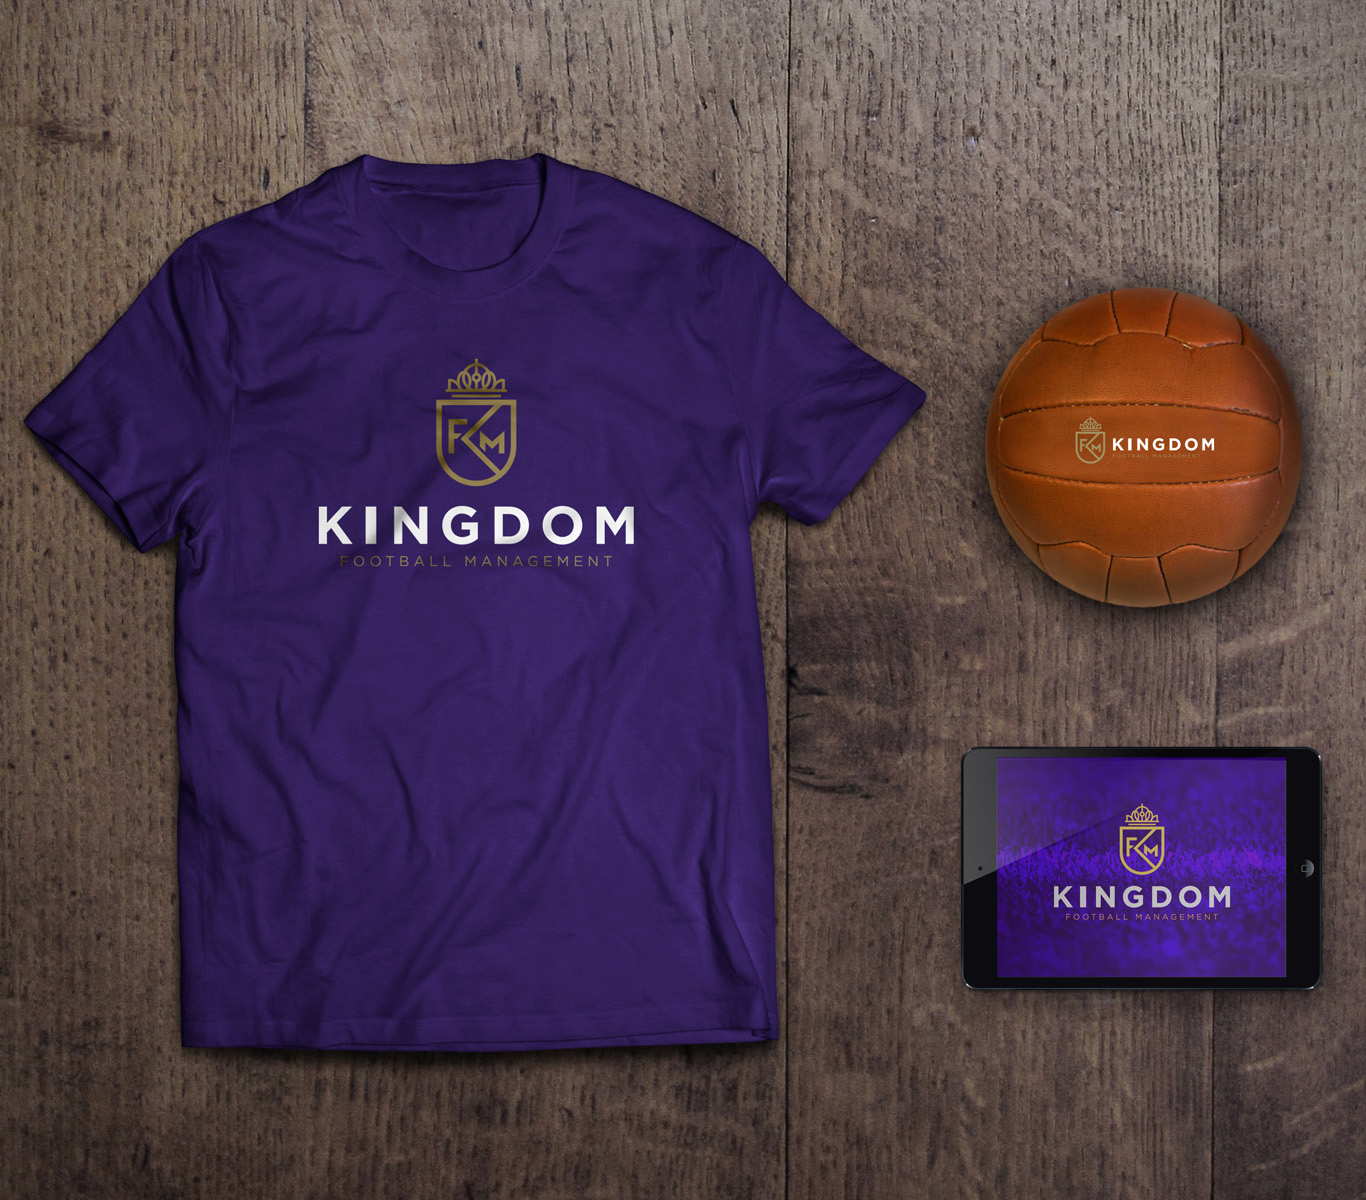 Kingdom Football Management